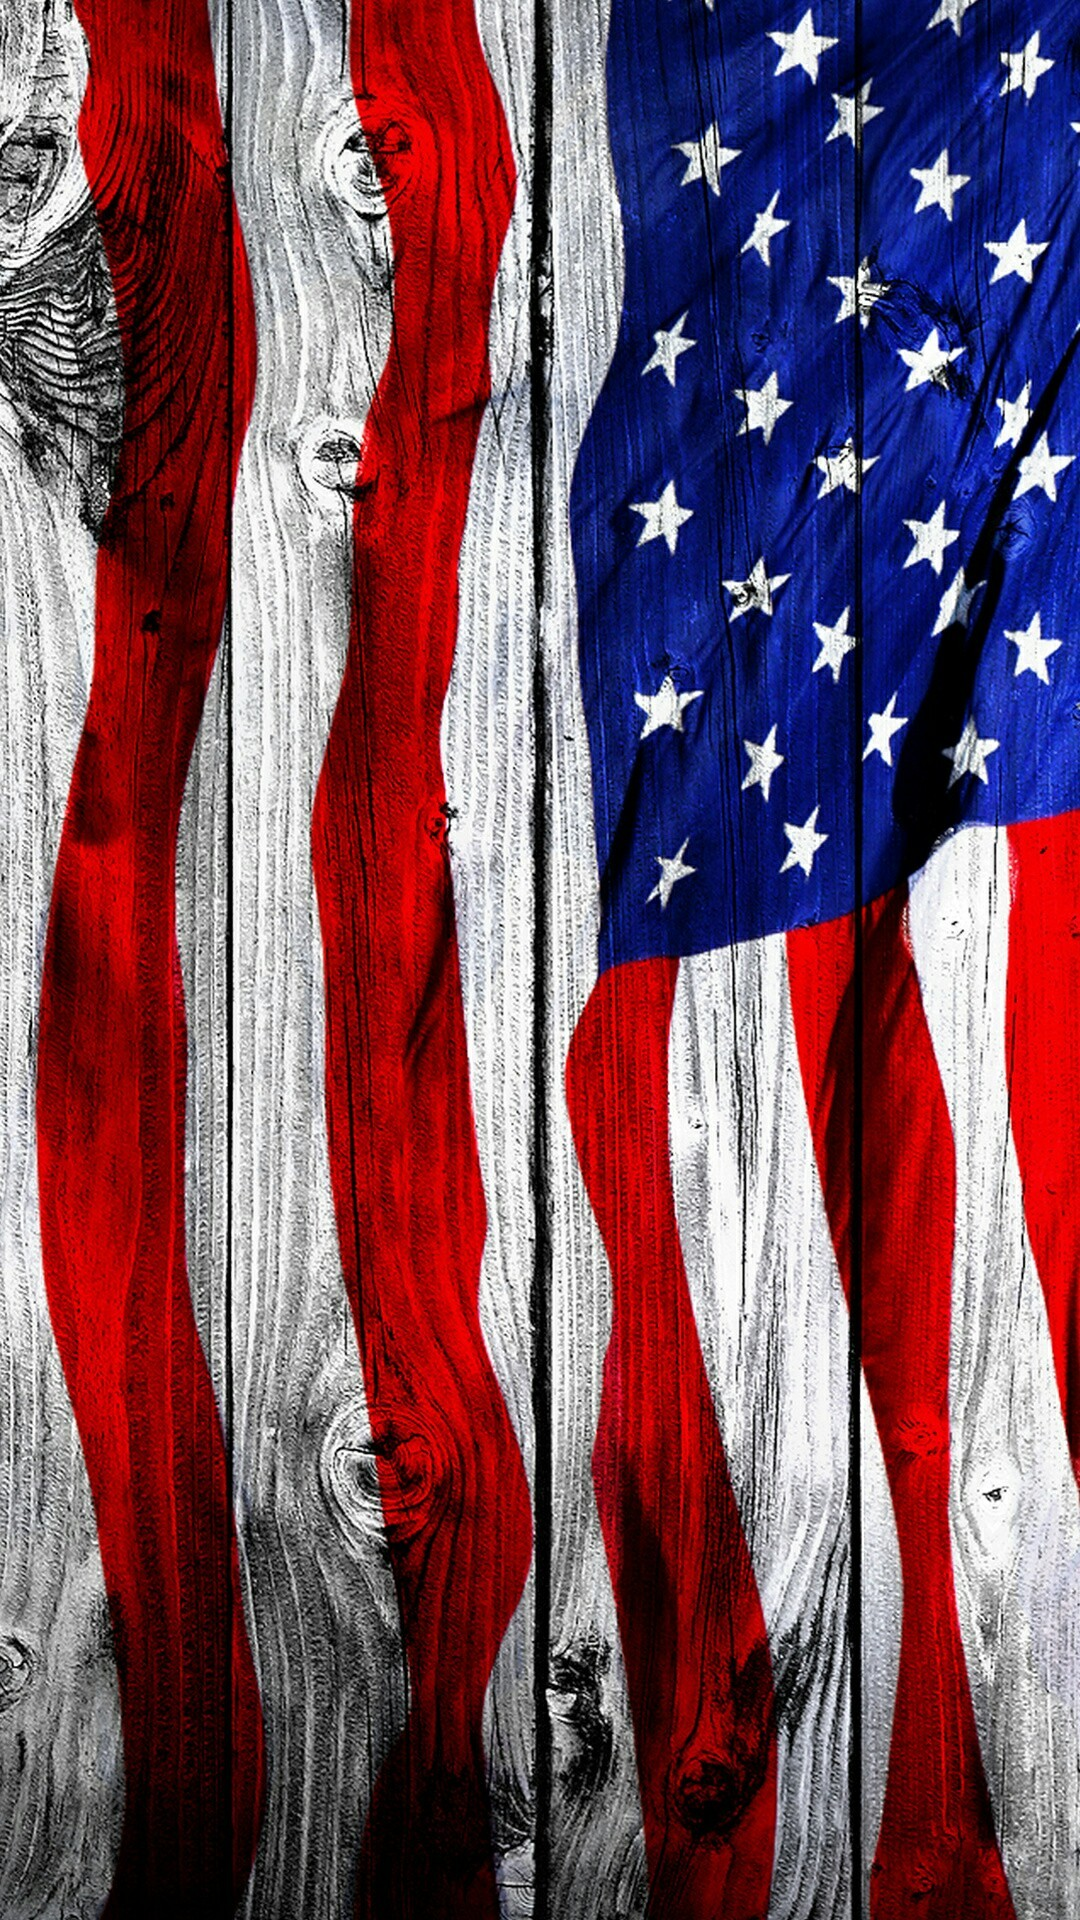 Paint your fence- American flag